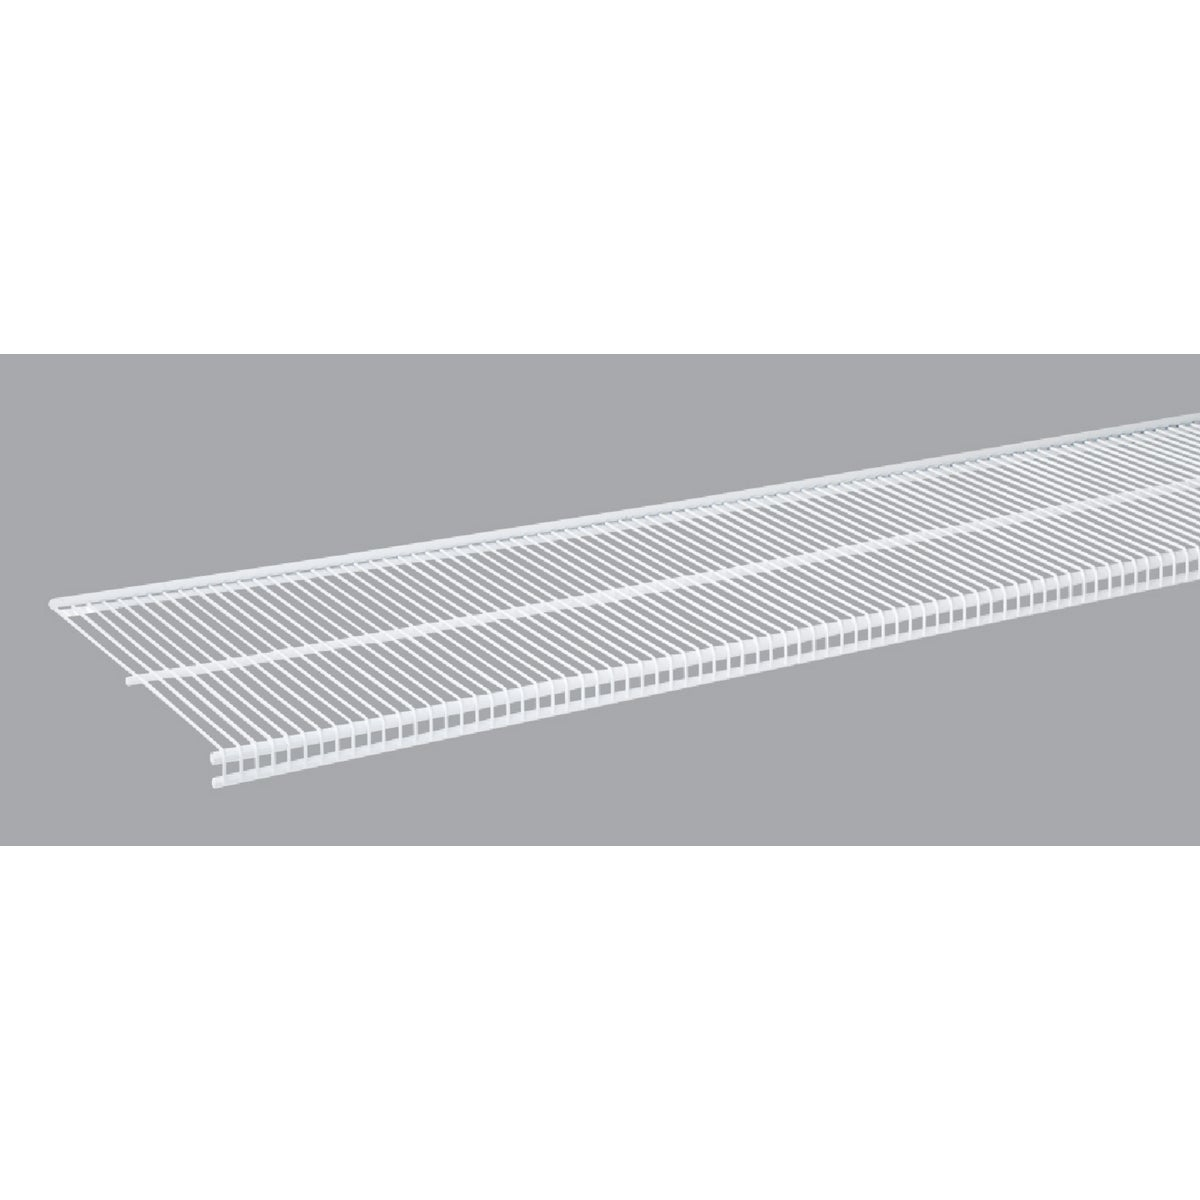 16X96 PROFILE SHELF - 1813169611 by Schulte Corp